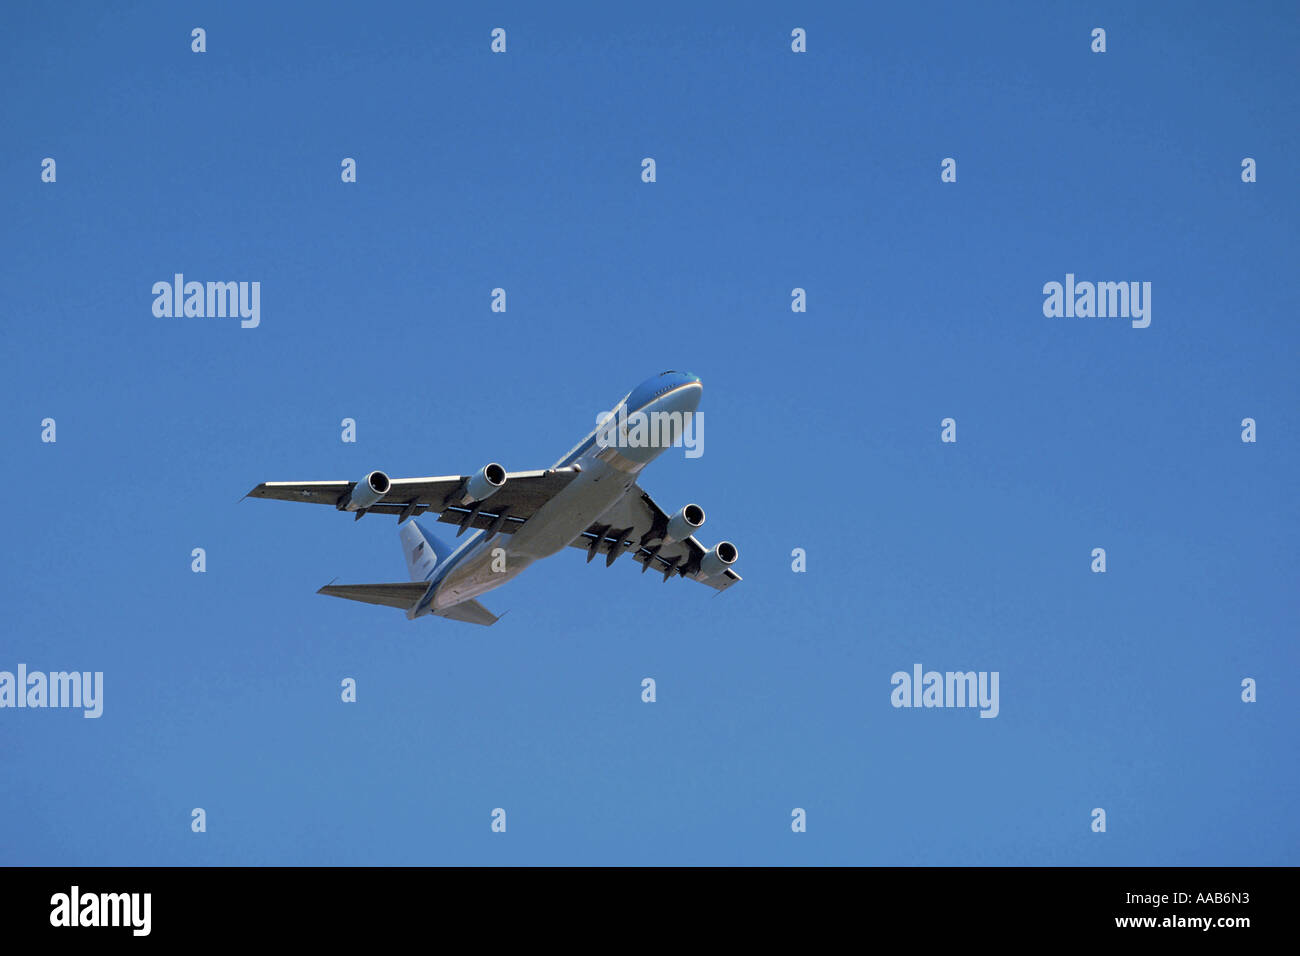 Air Force One seconds after takeoff from LAX, Los Angeles - Stock Image